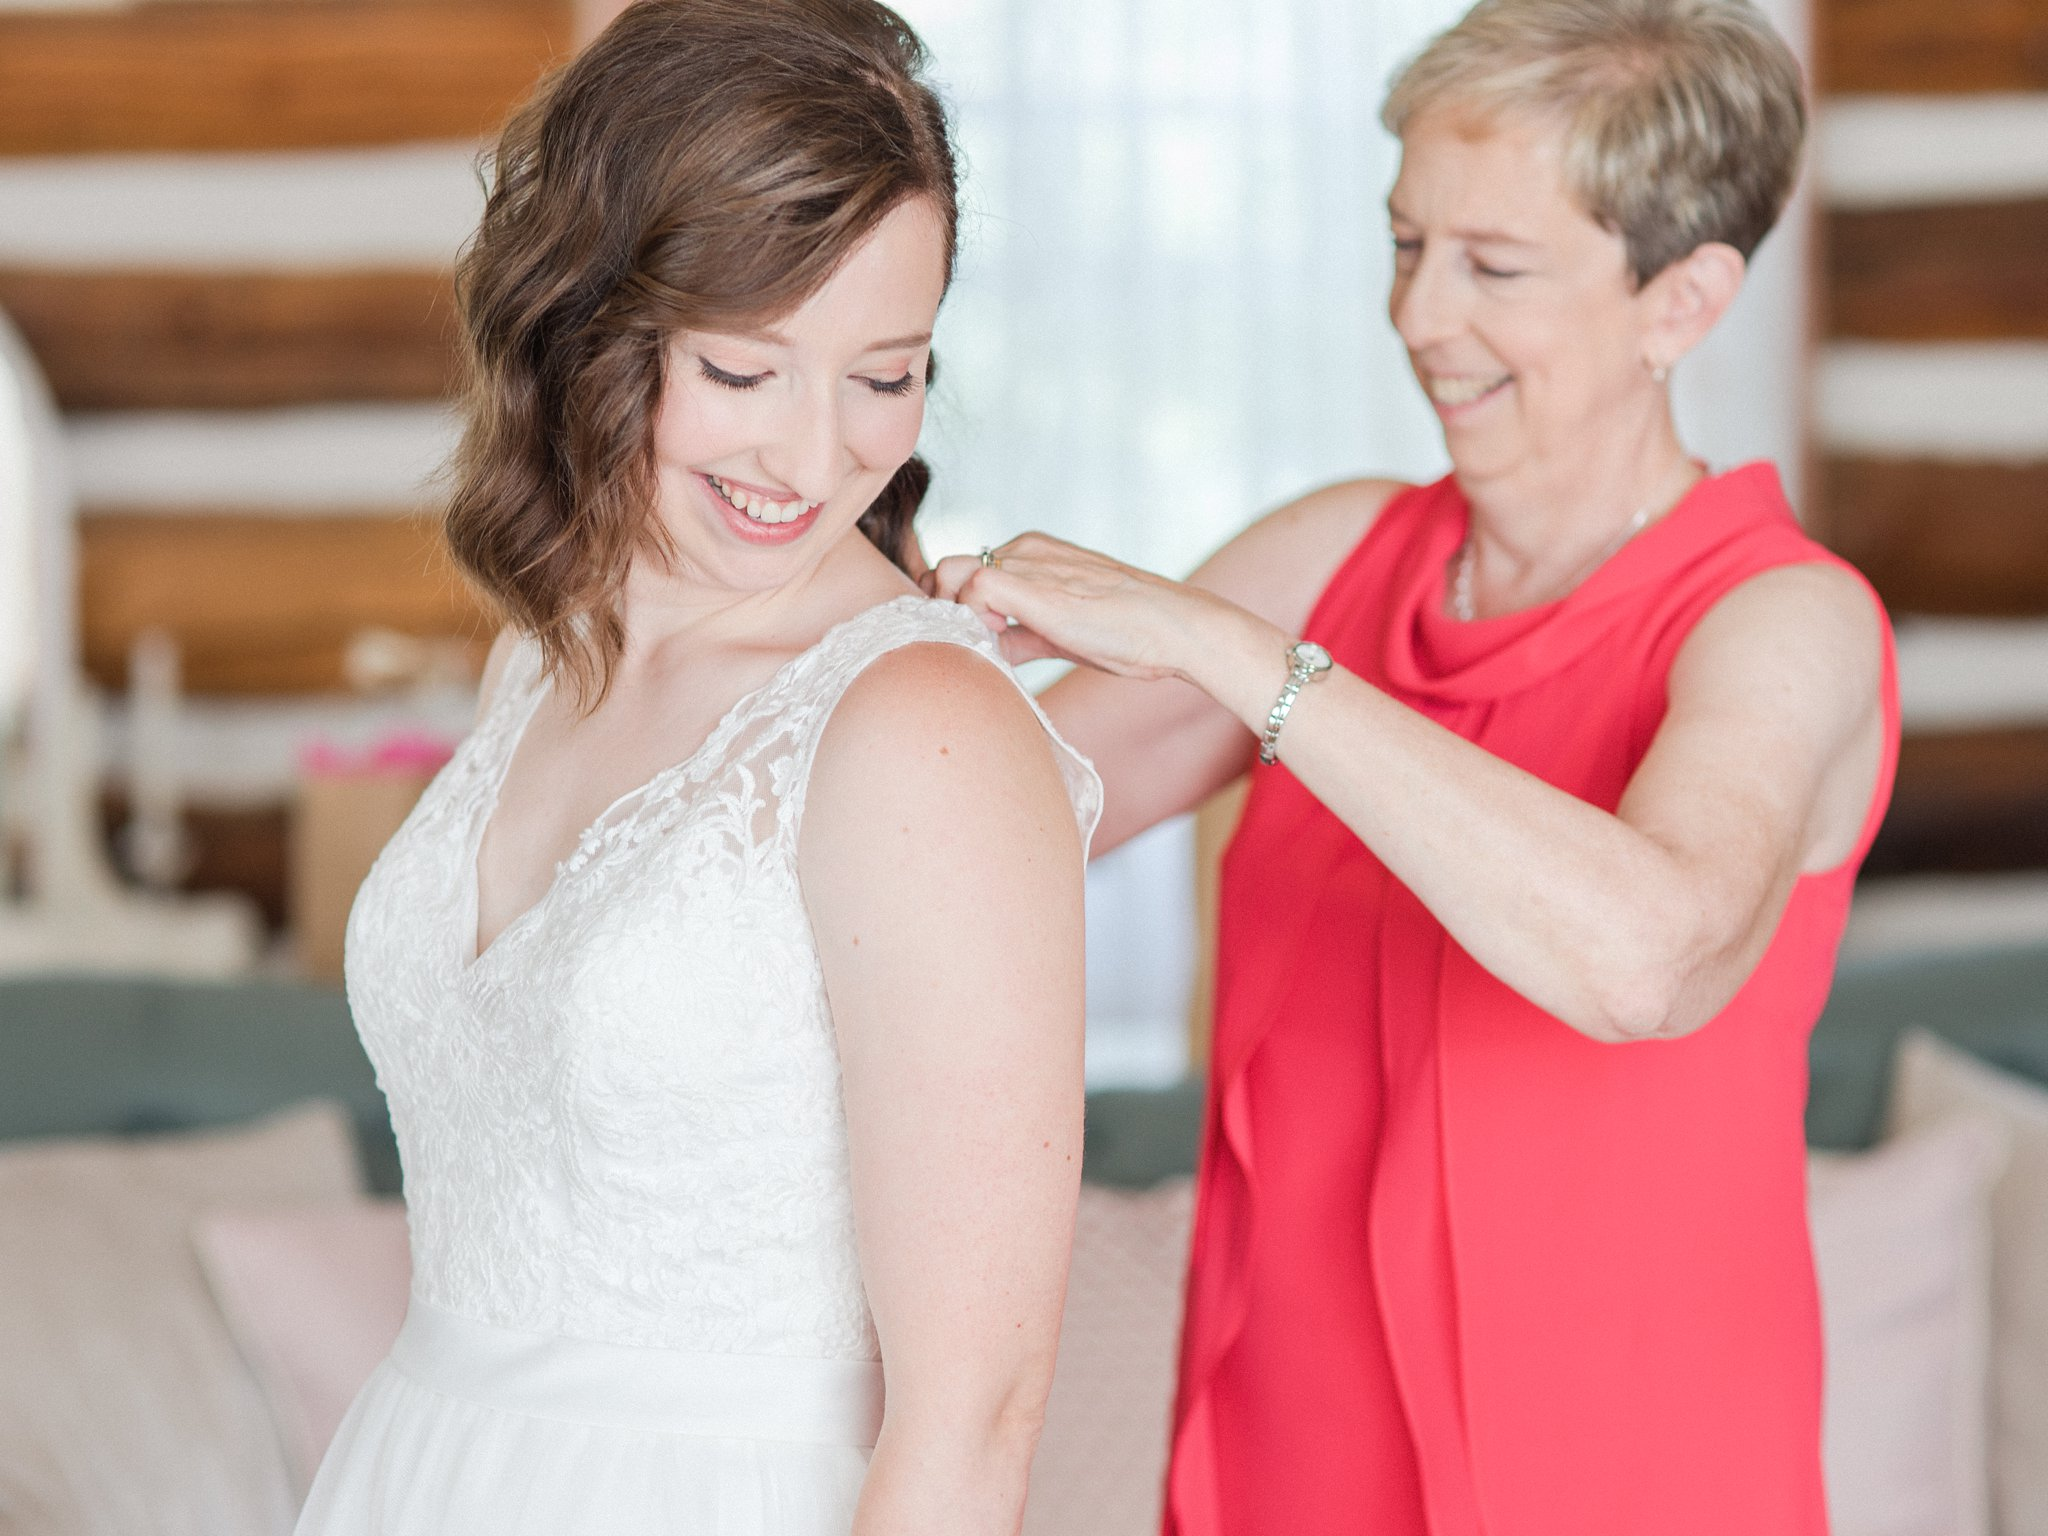 Mother buttoning bride's dress Dog-friendly wedding venue Ottawa Stonefields Amy Pinder Photography